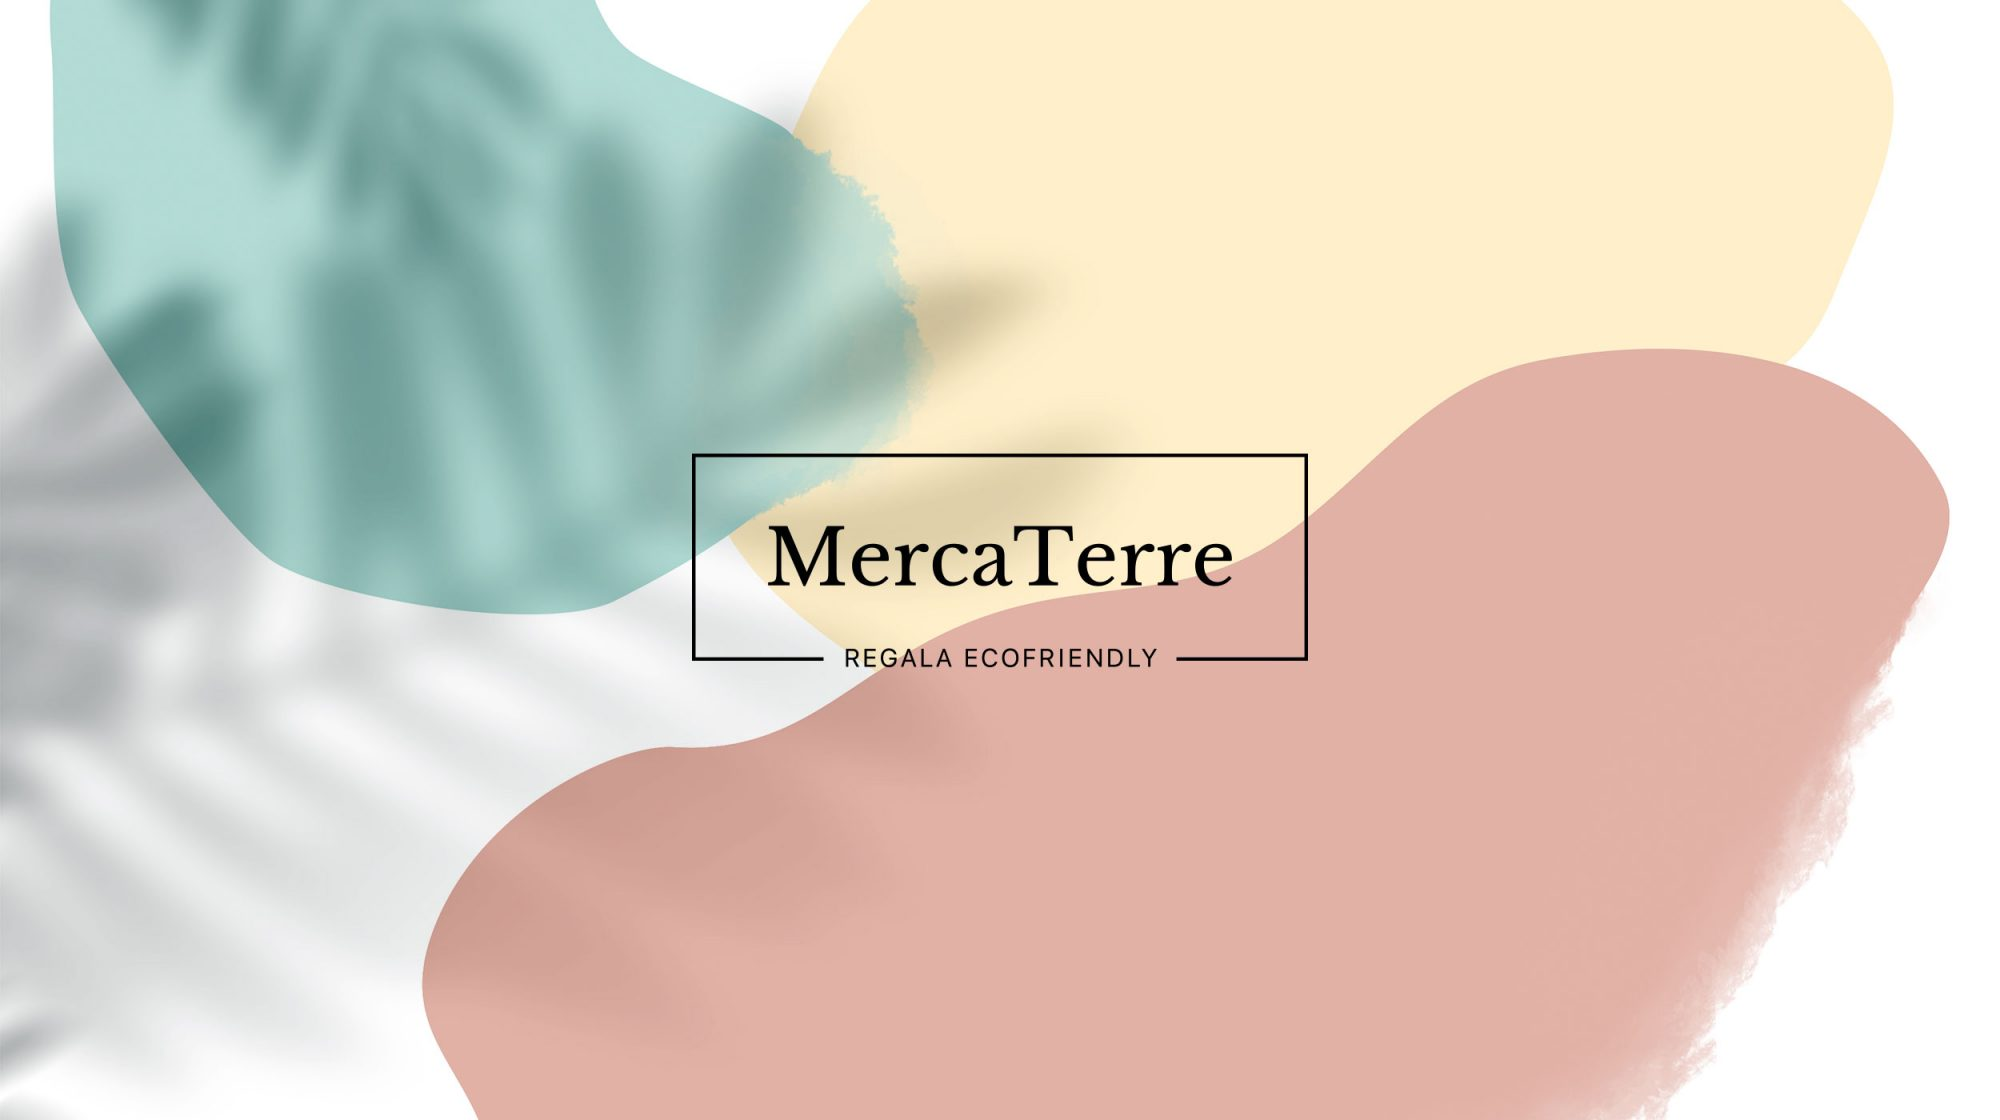 Logotipo MercaTerre - Regala Ecofriendly